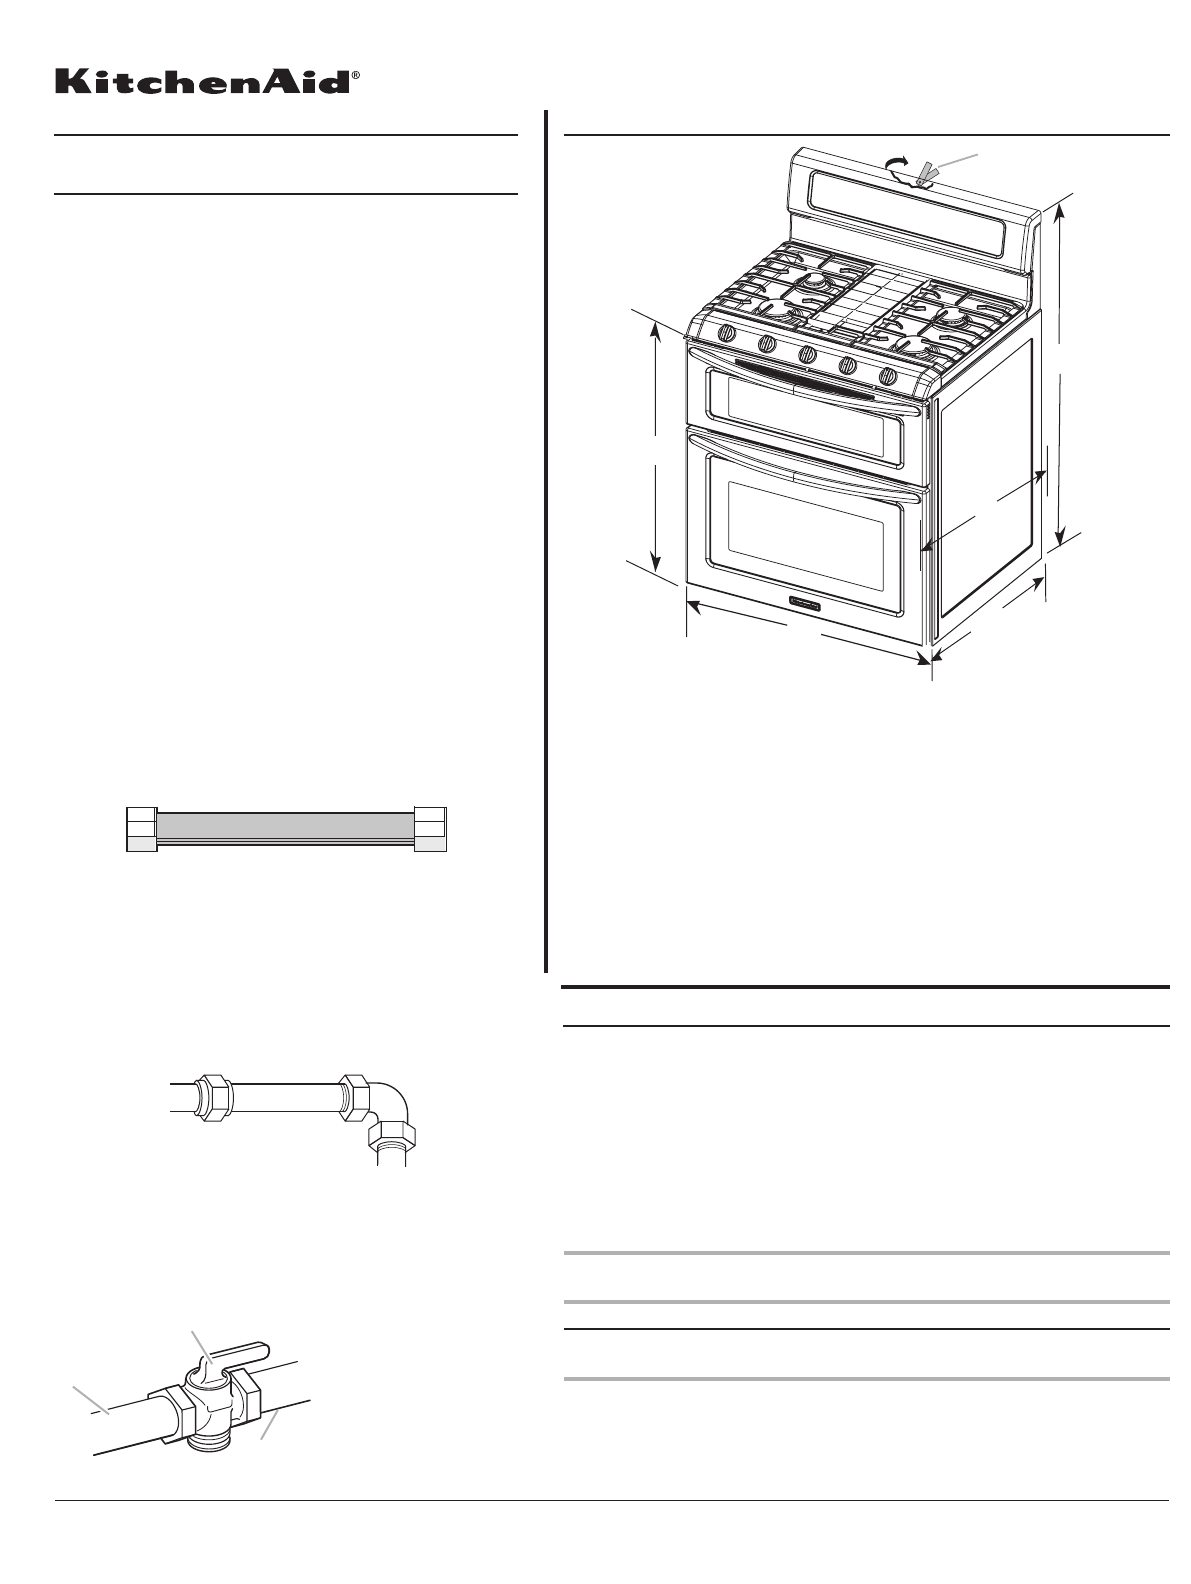 KitchenAid Double Oven KDRS505X User Guide  ManualsOnlinec -> Kitchenaid Oven Manual